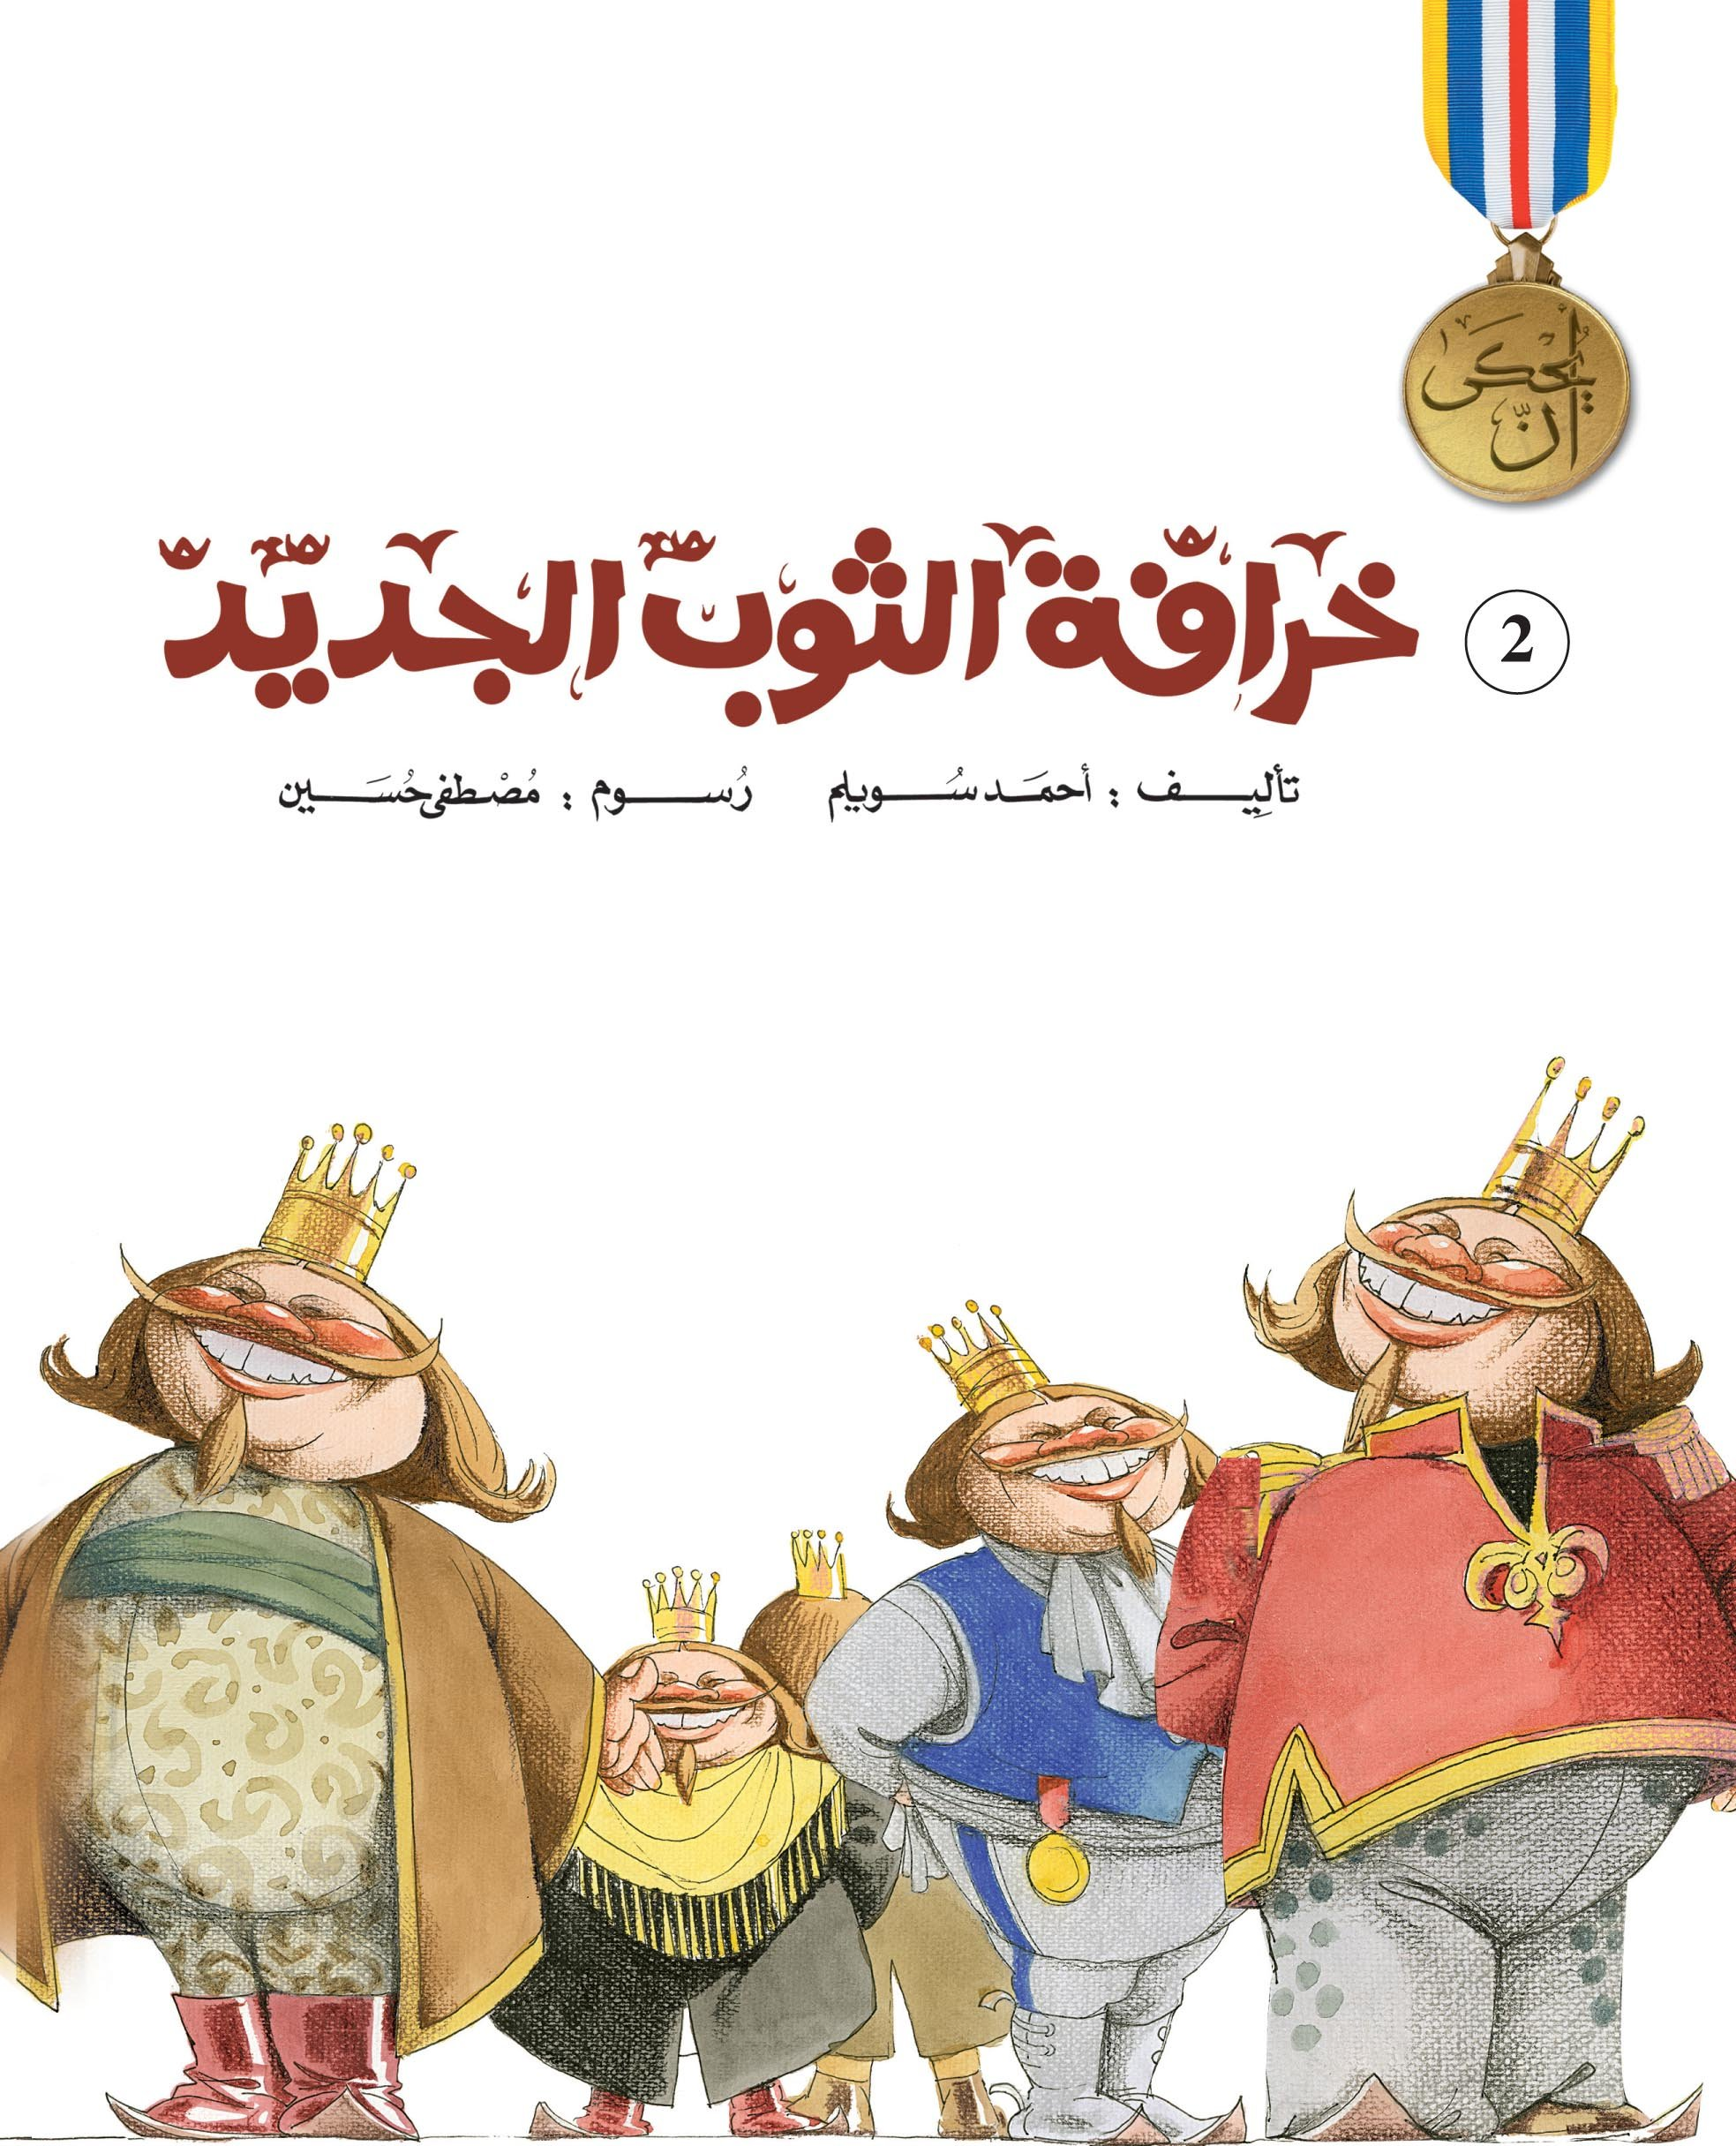 خرافة الثوب الجديد (Arabic Edition) (Hindi Edition): Ahmed Sweilam